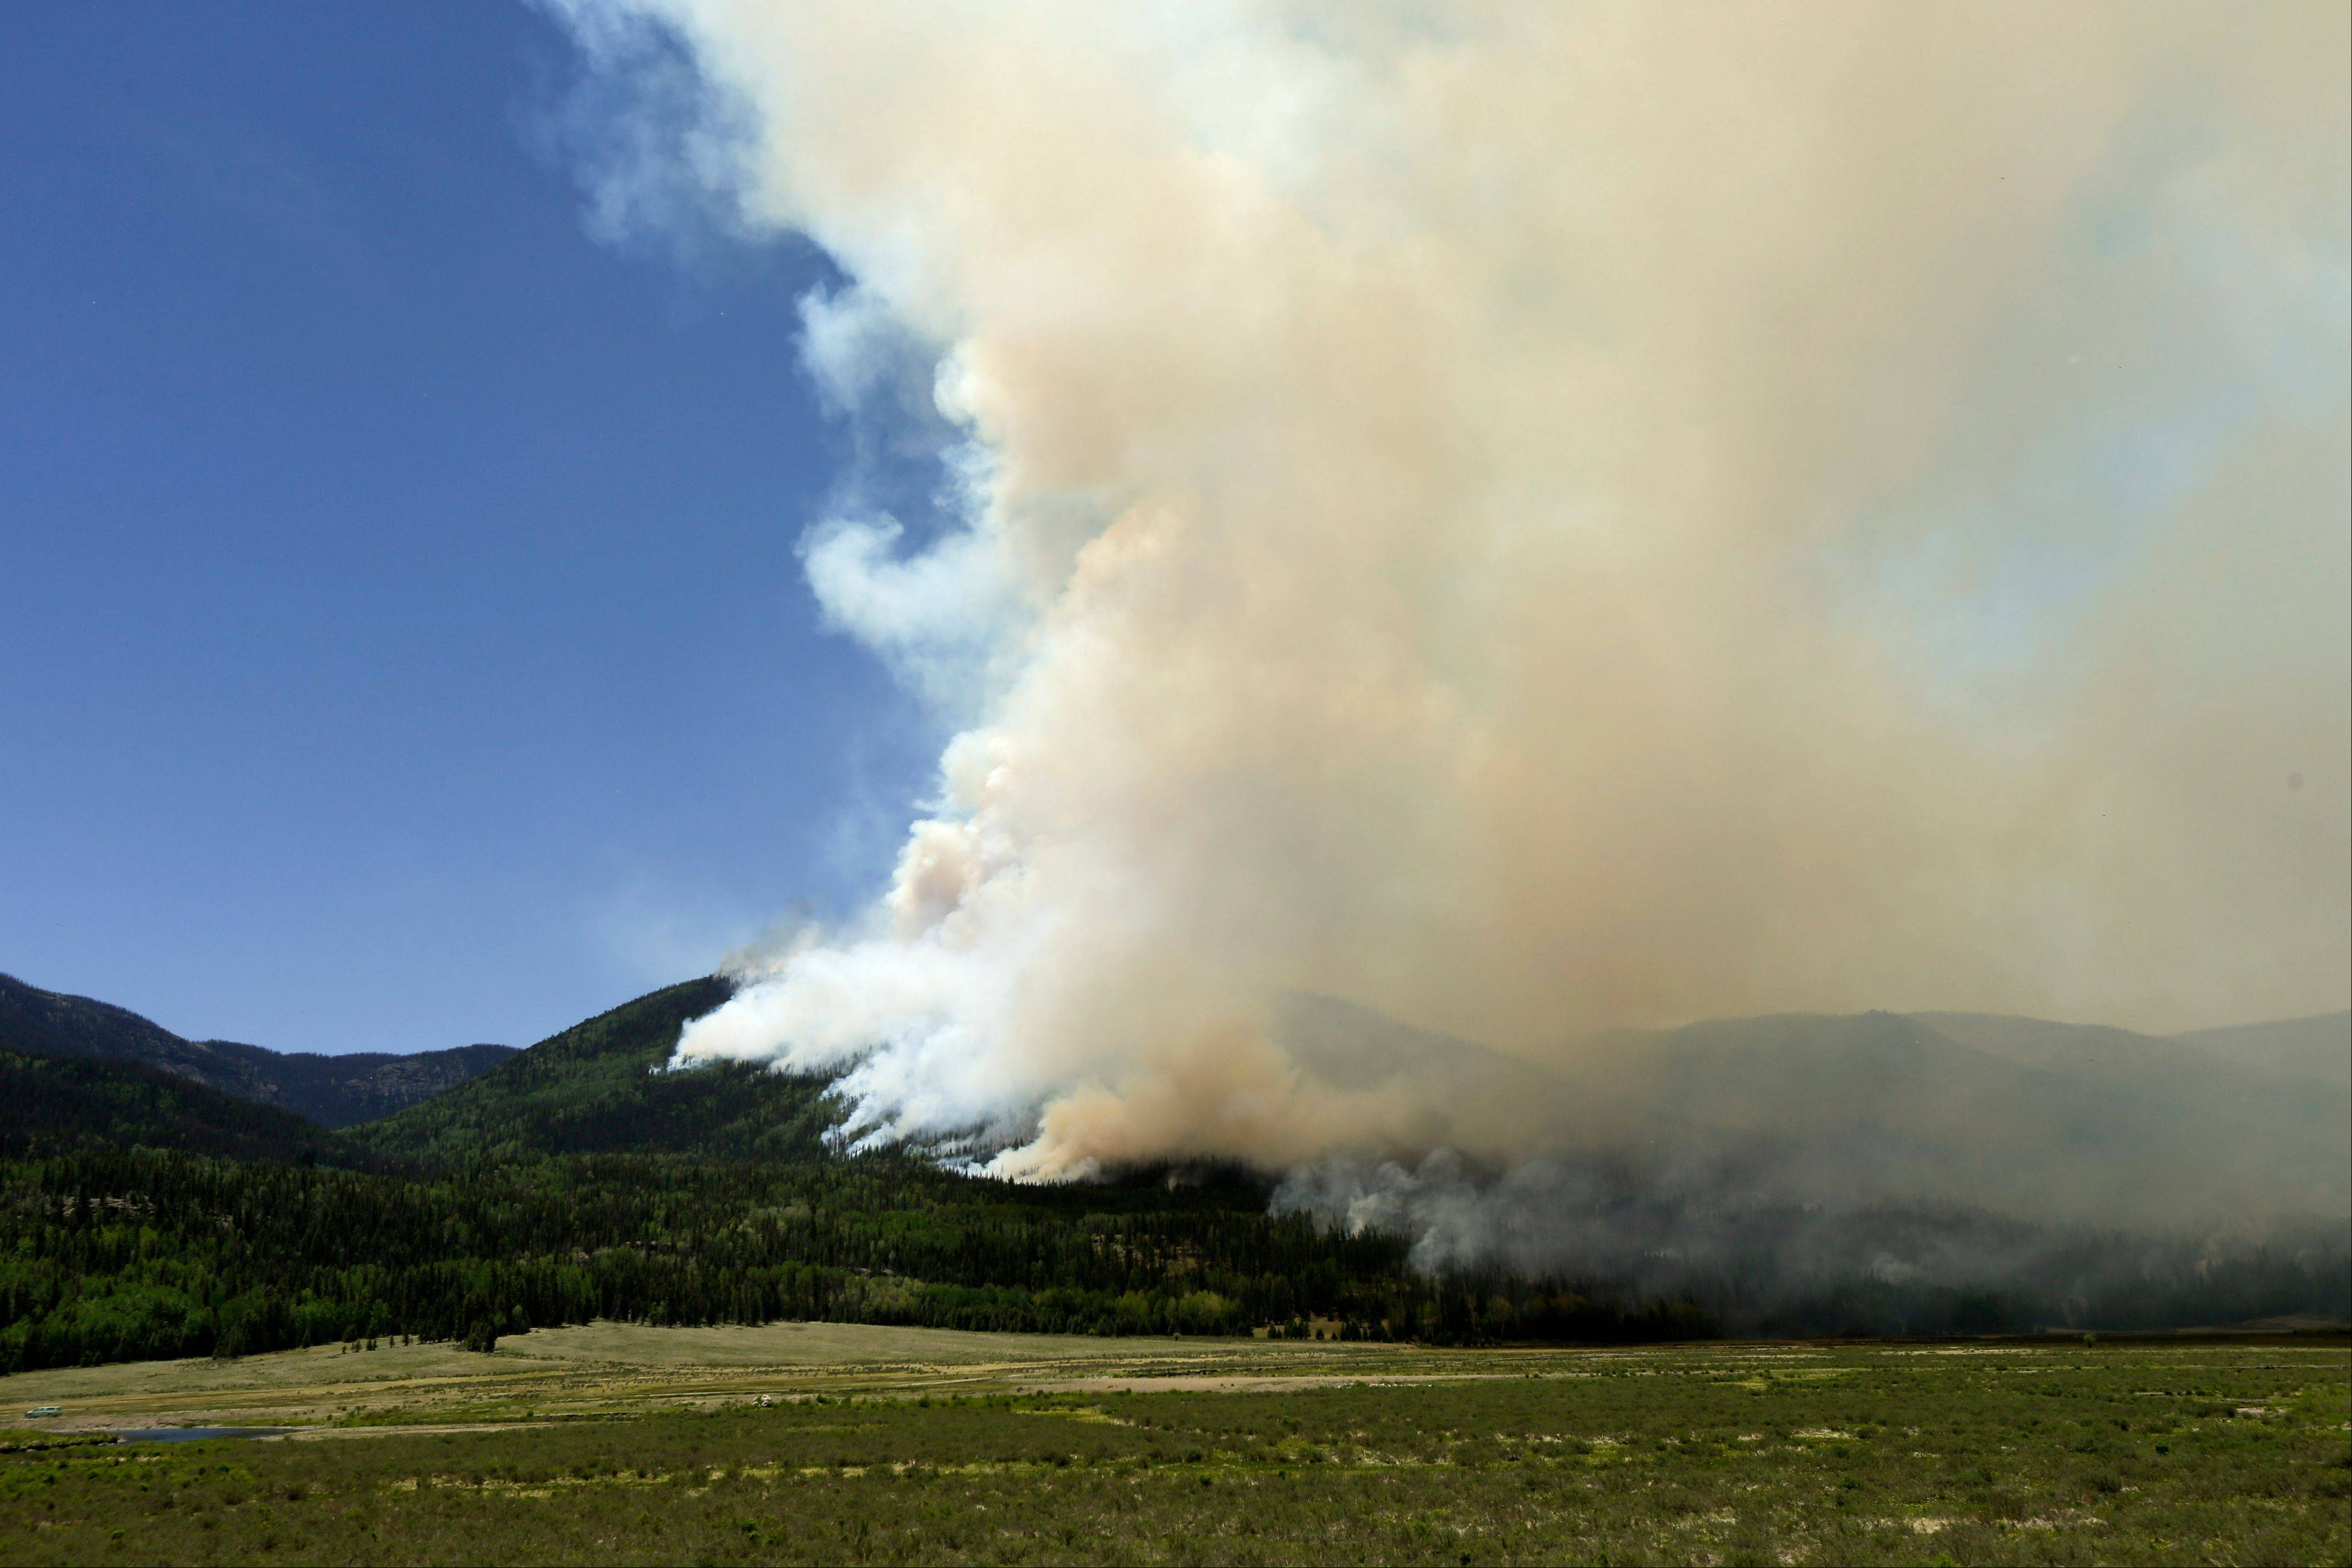 A wildfire burns on a hillside along highway 149 west of Creede, Colo., Monday, June 24, 2013. Crews defending resort towns, homes and cabins against a massive and erratic wildfire in Colorado's southwest mountains were looking Tuesday for a slight break after nearly a week of unrelenting winds.